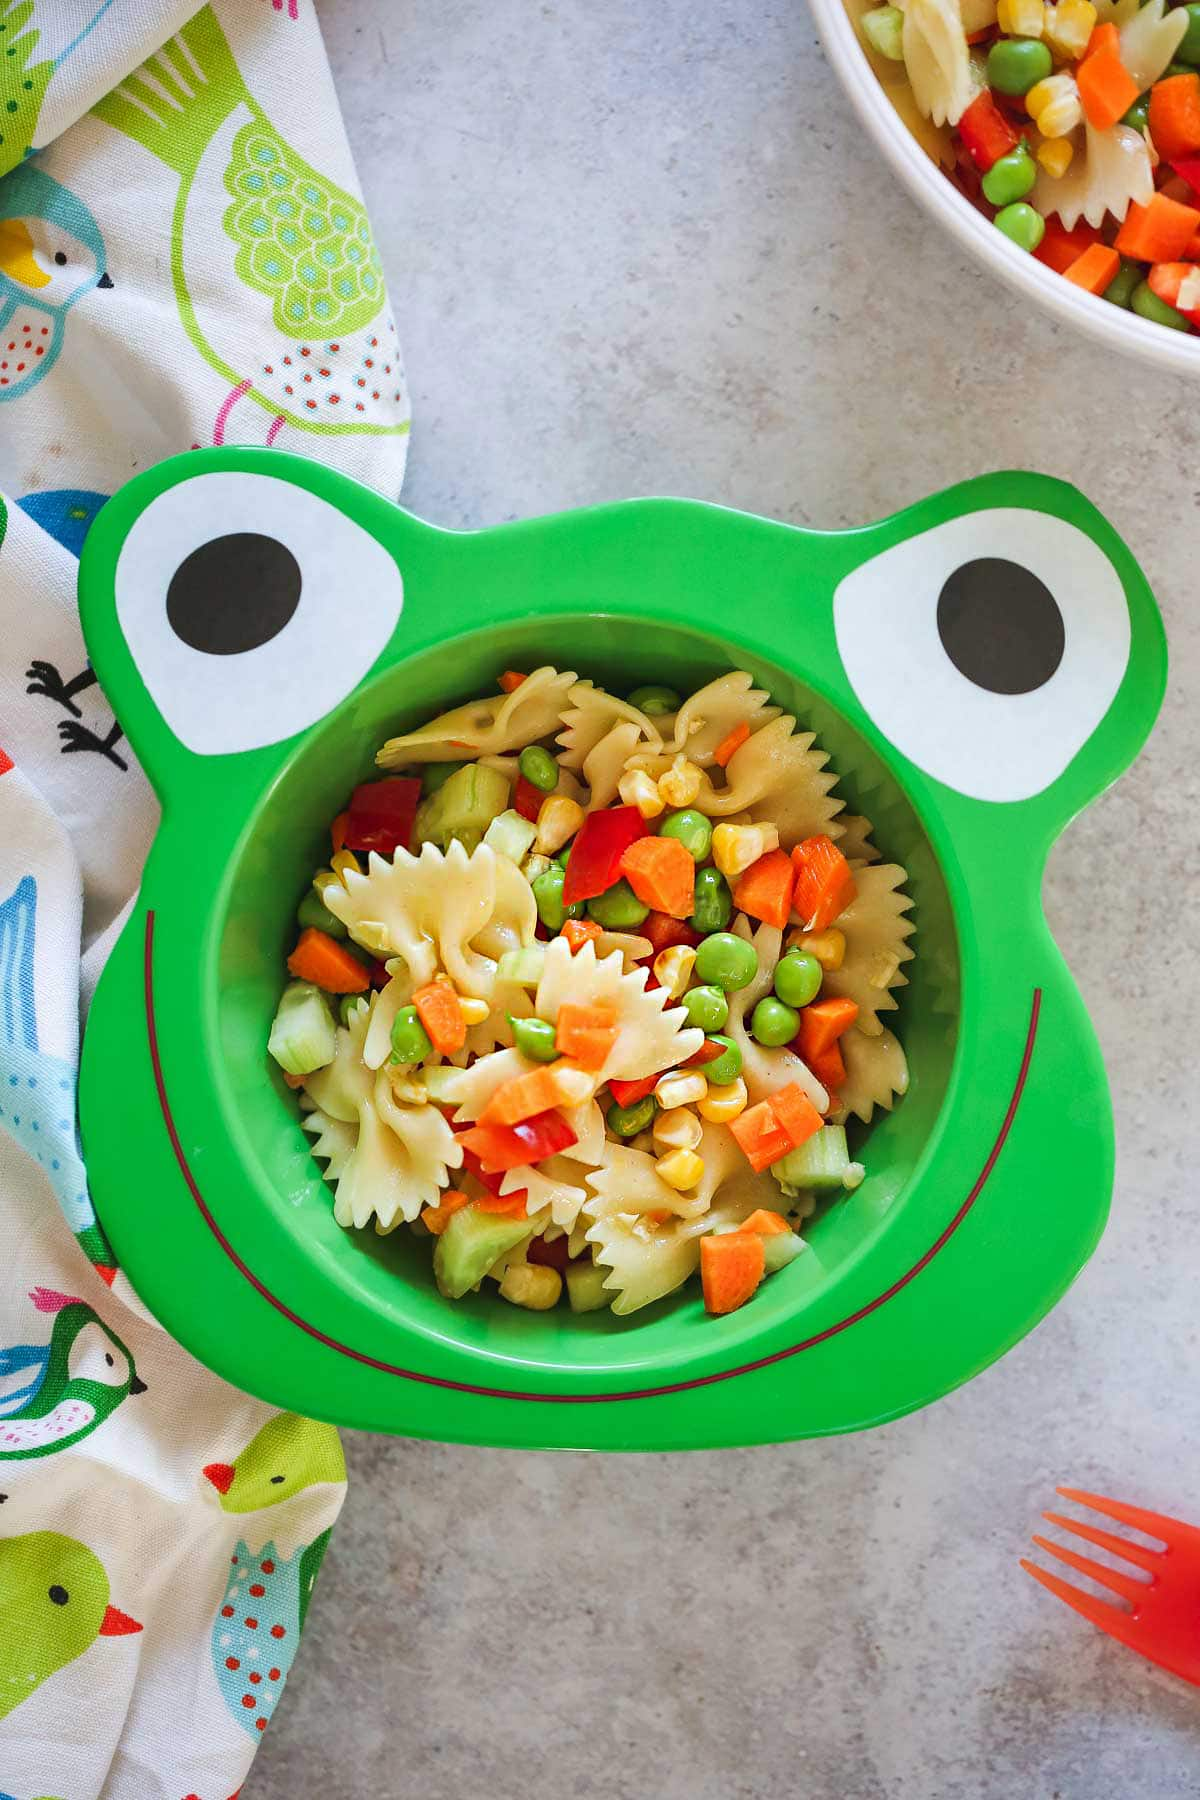 Pasta salad in a fun kids frog shaped bowl and a plastic red fork on the side